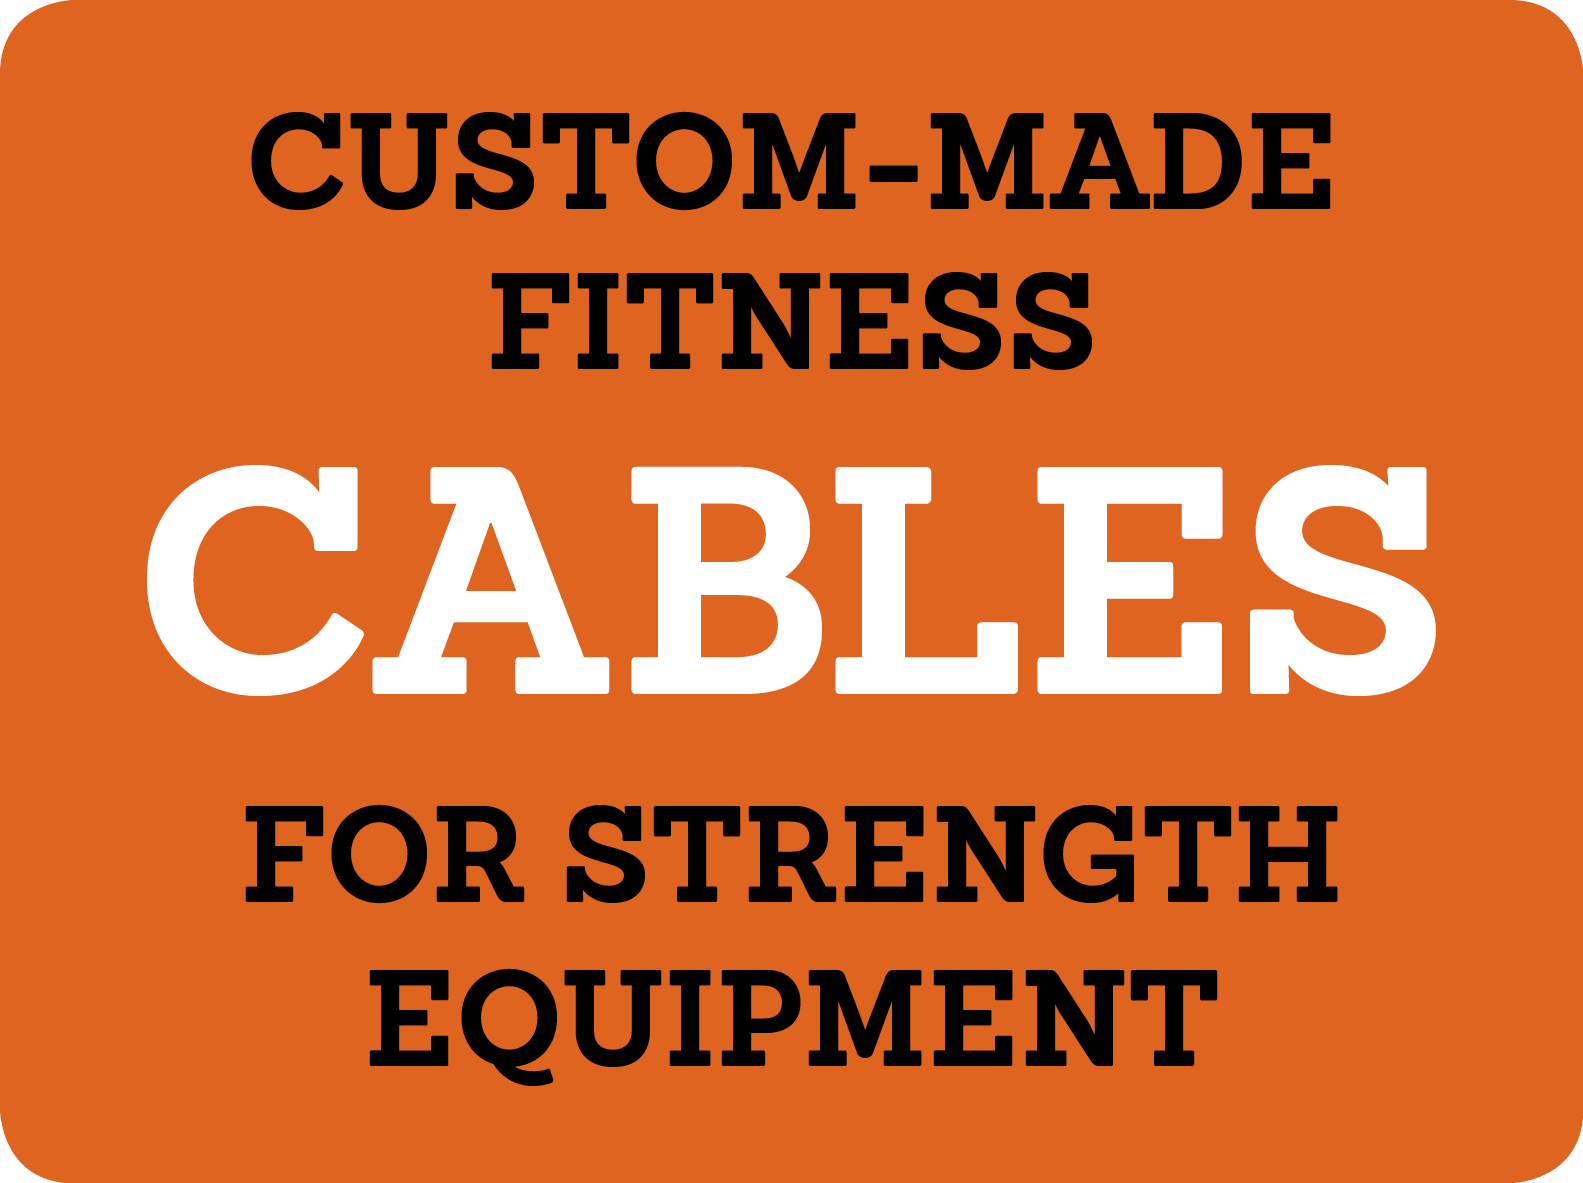 Custom-made fitness cables for selectori...